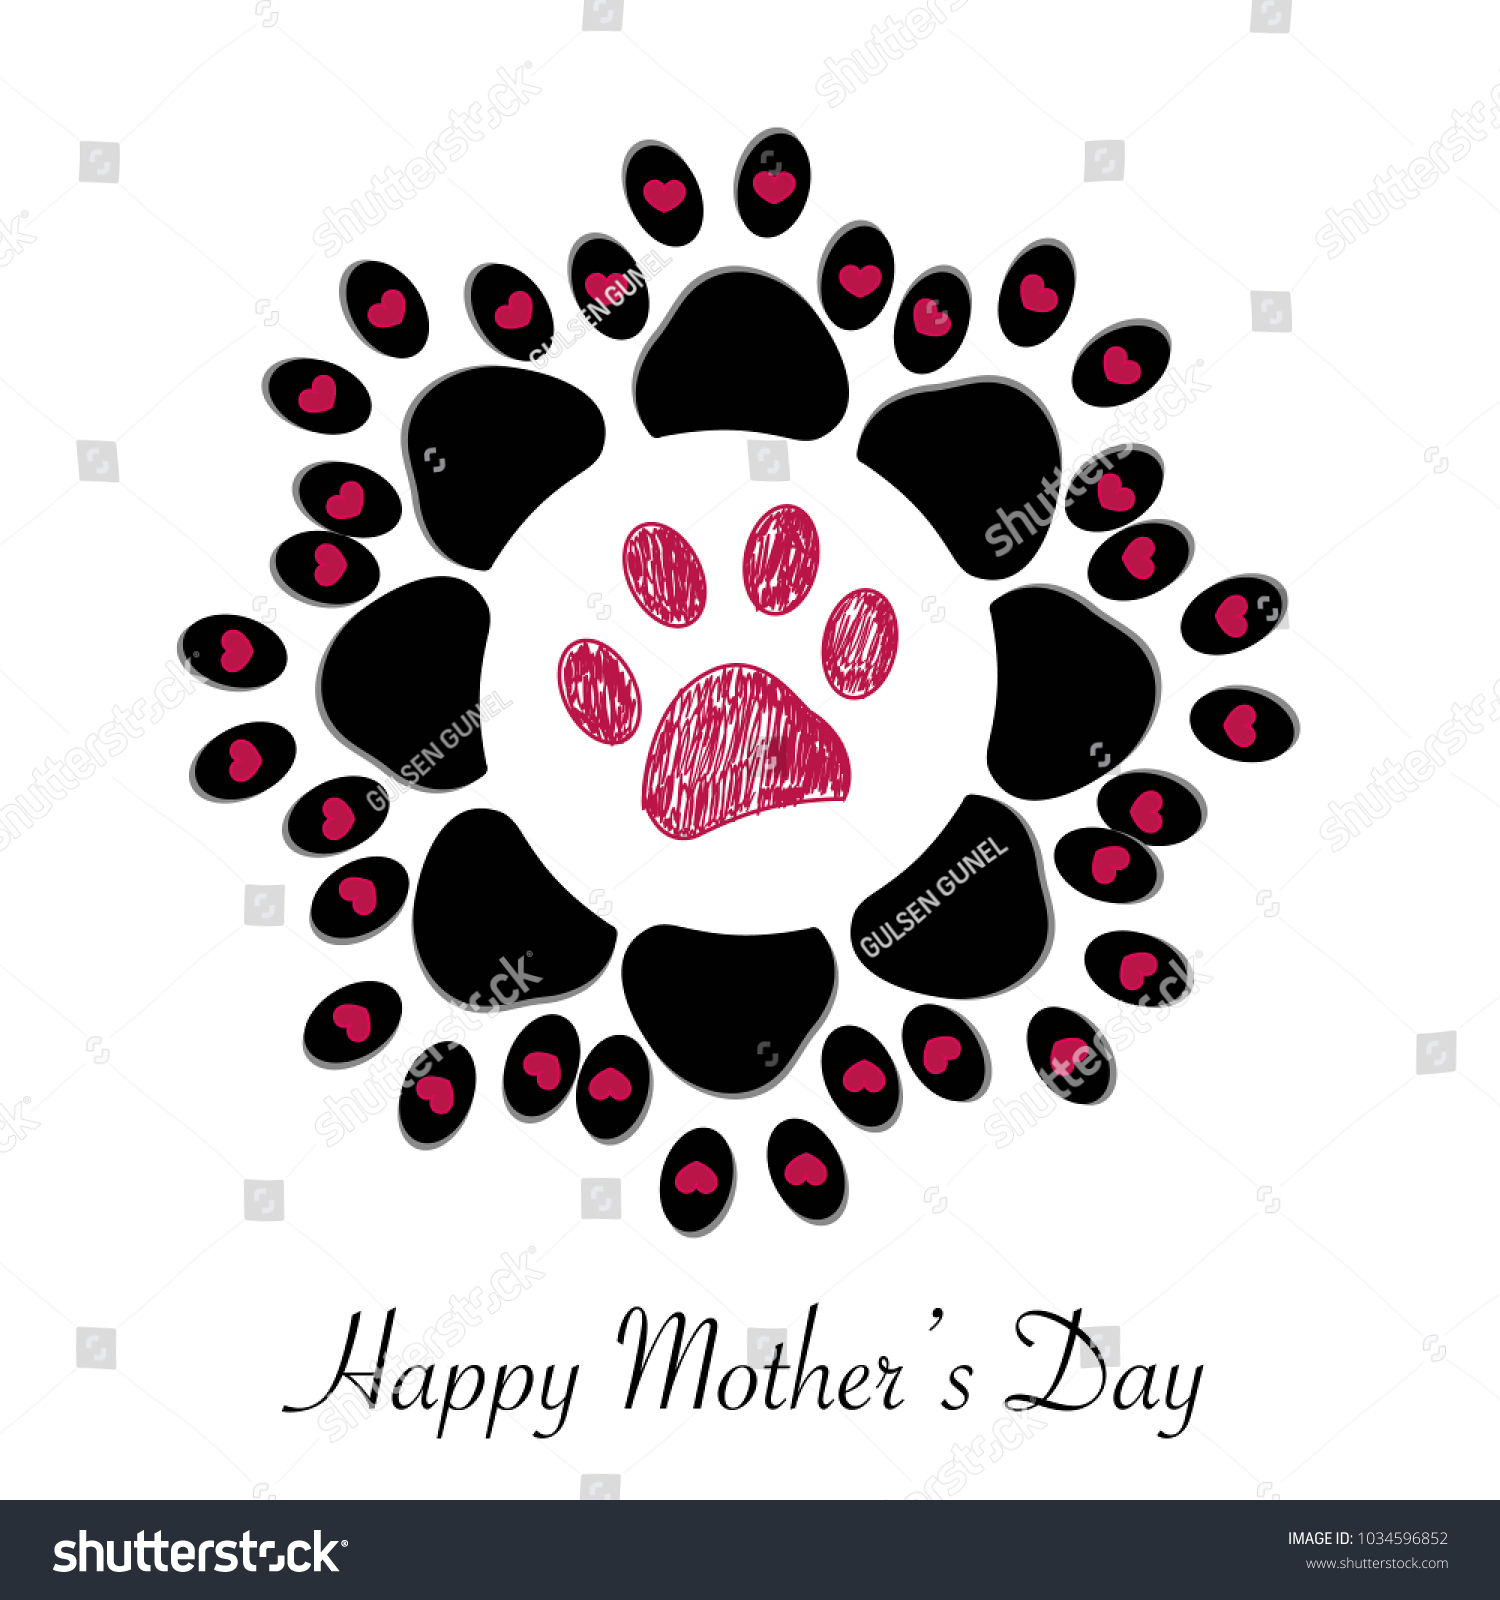 Flower made paw print hearts happy stock vector 1034596852 flower made of paw print with hearts and happy mothers day text kristyandbryce Choice Image